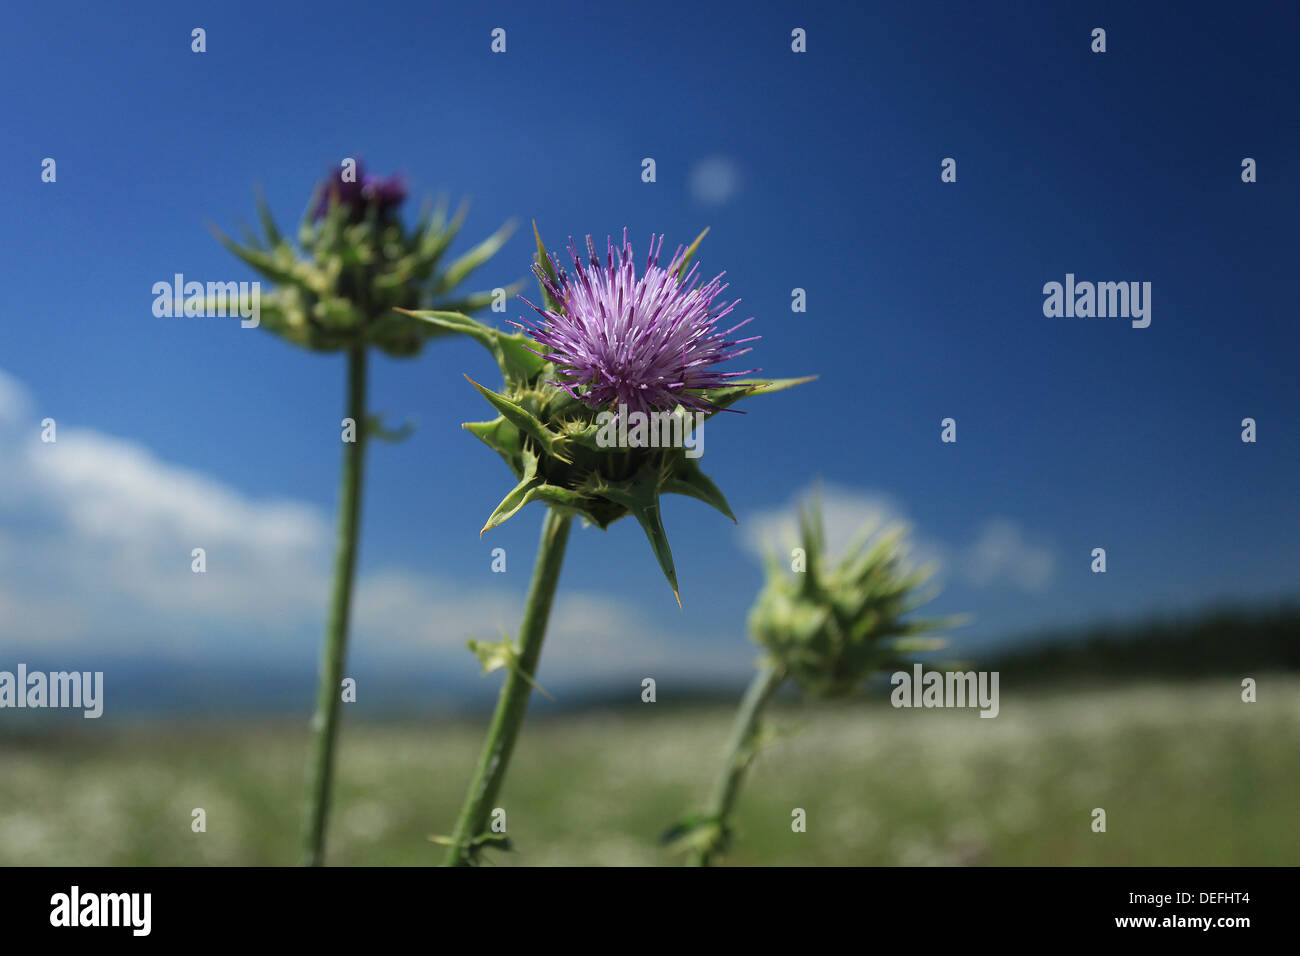 thistle, prickle, spine, thorn - Stock Image